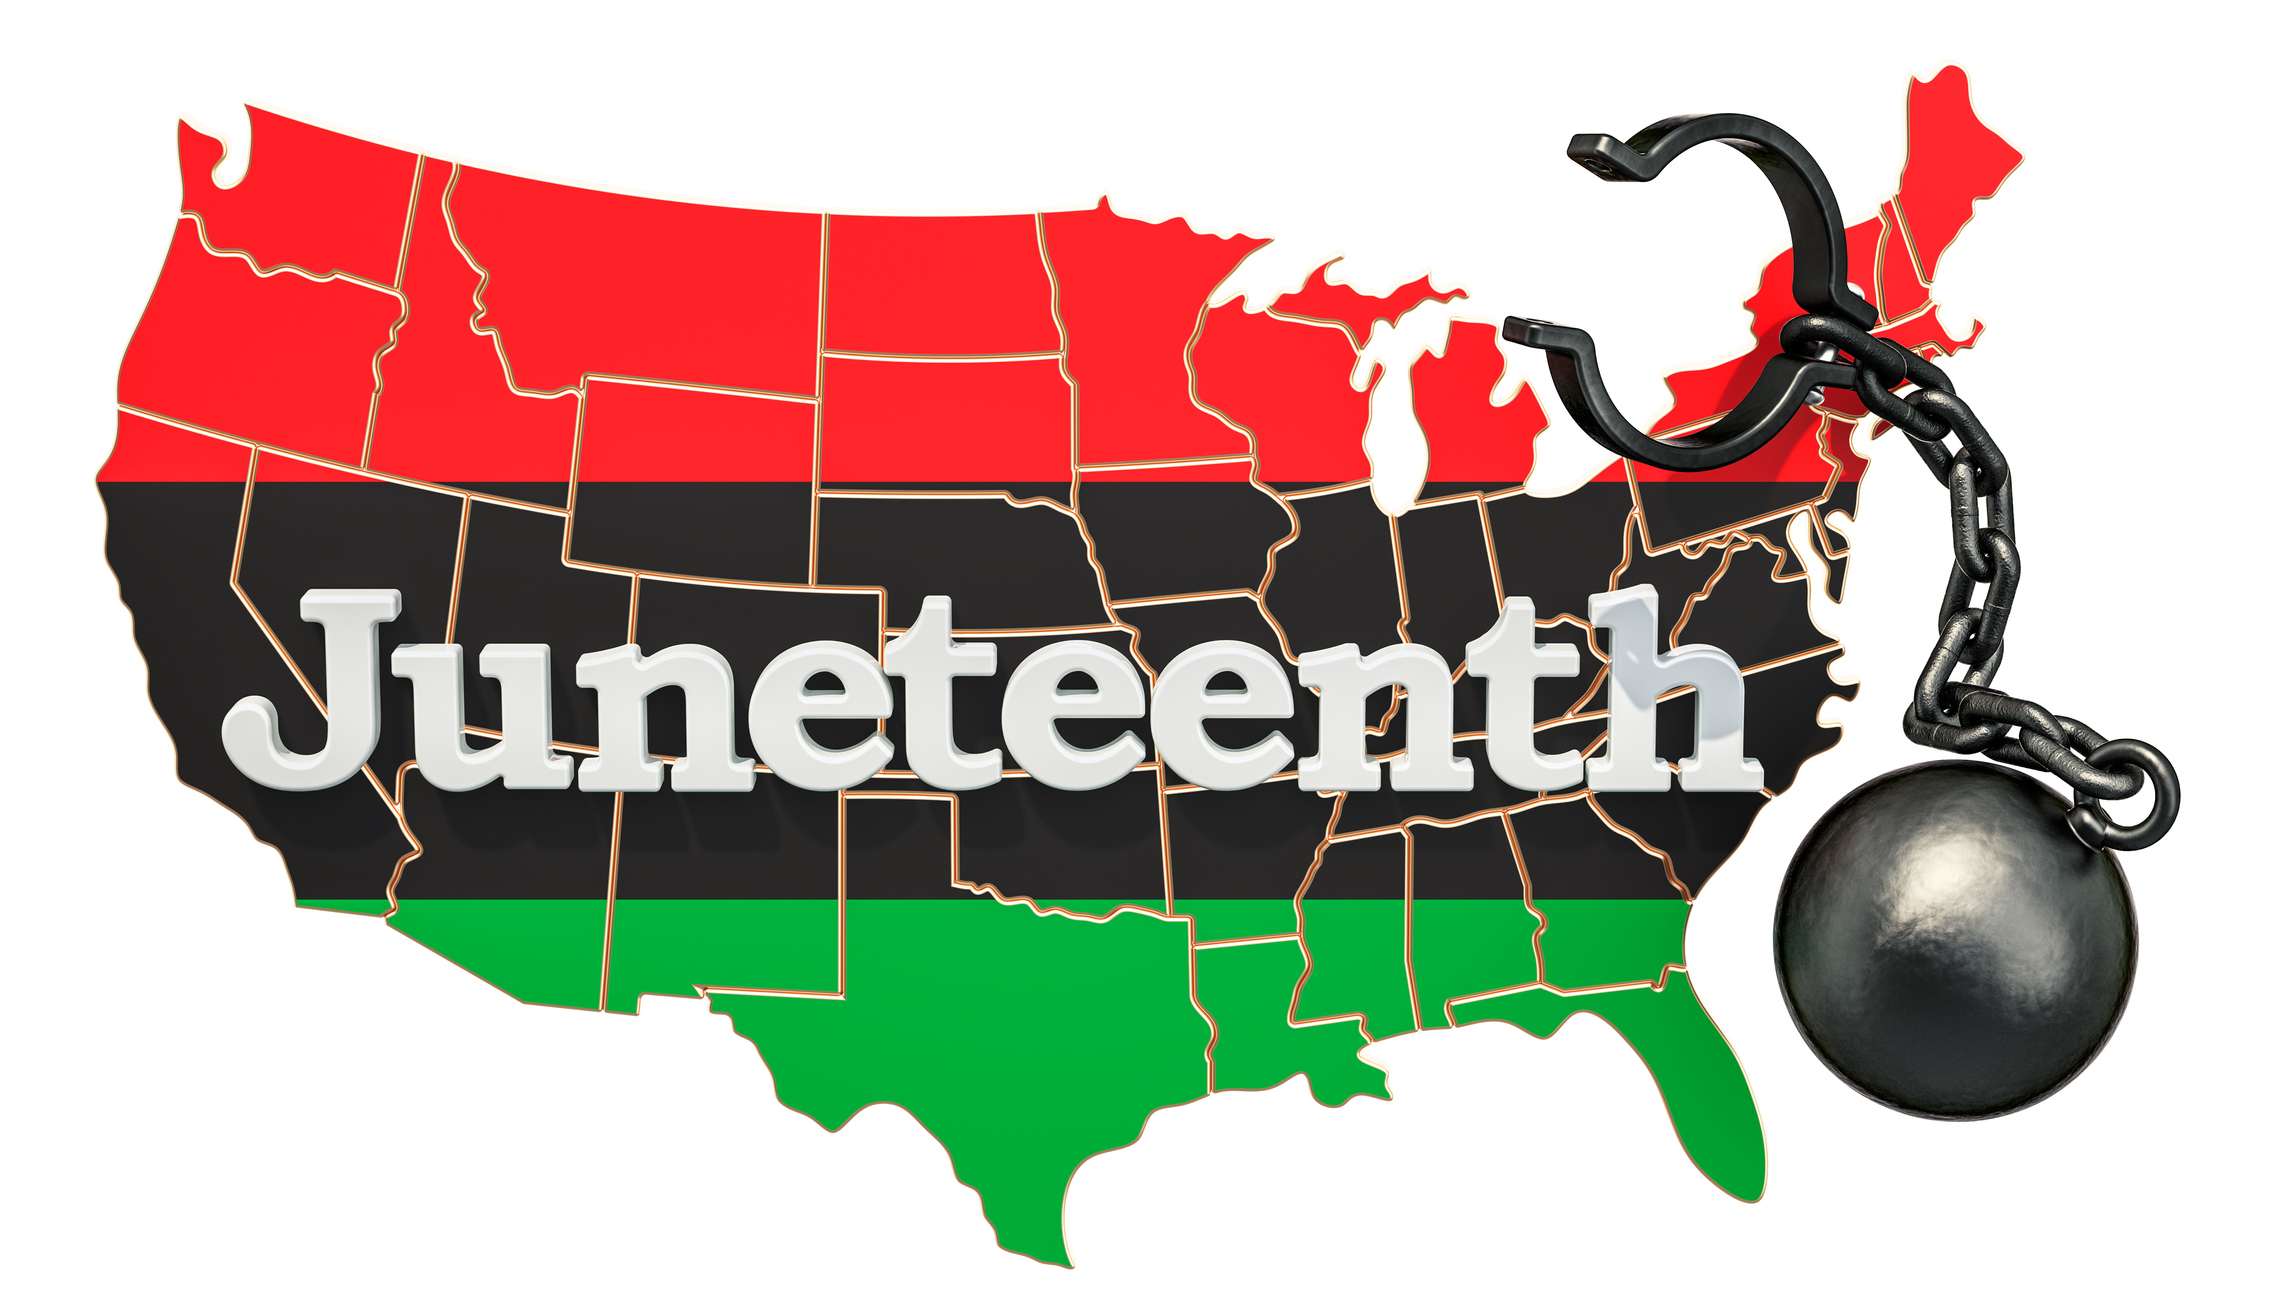 Juneteenth Independence Day concept, 3D rendering isolated on white background